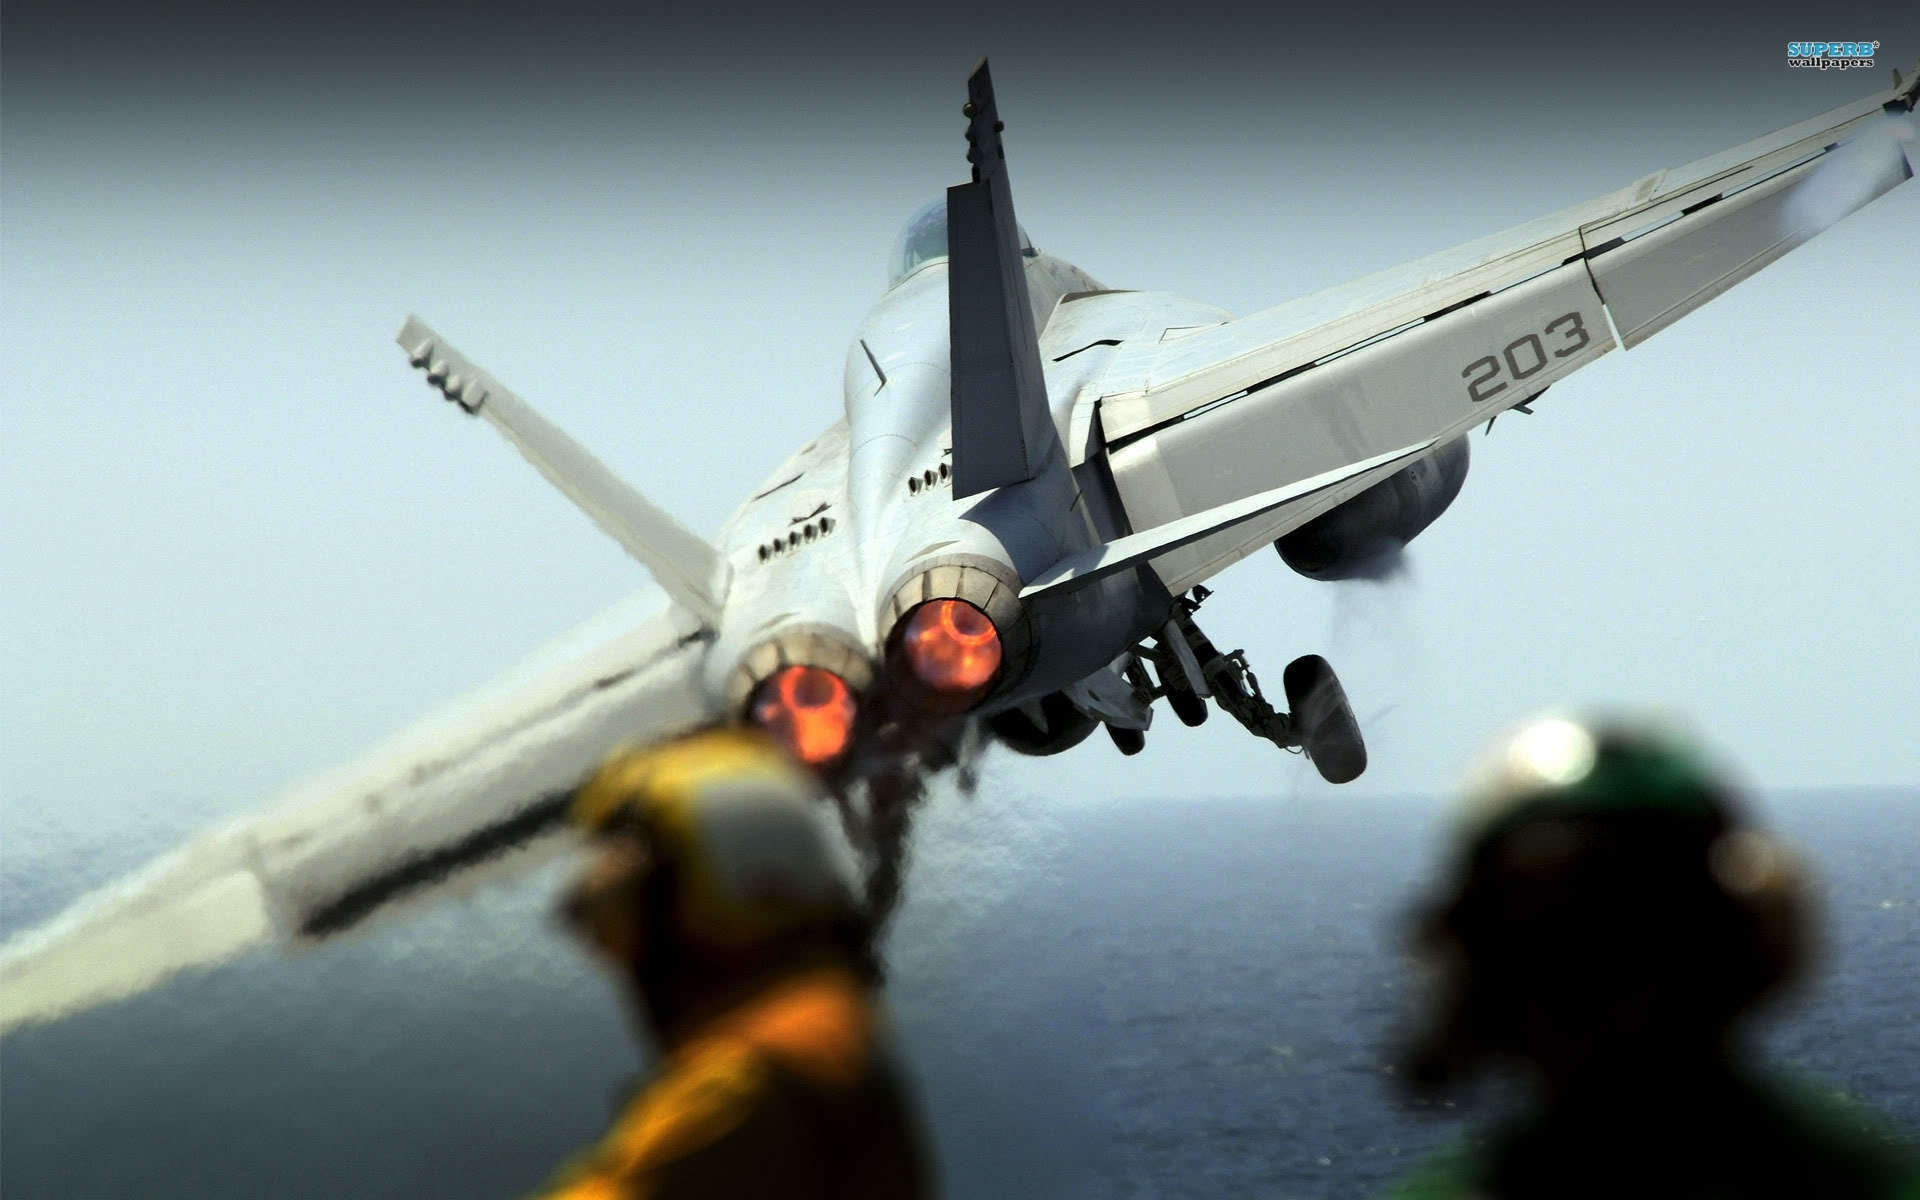 f 18 super hornet hd wallpaper, background images